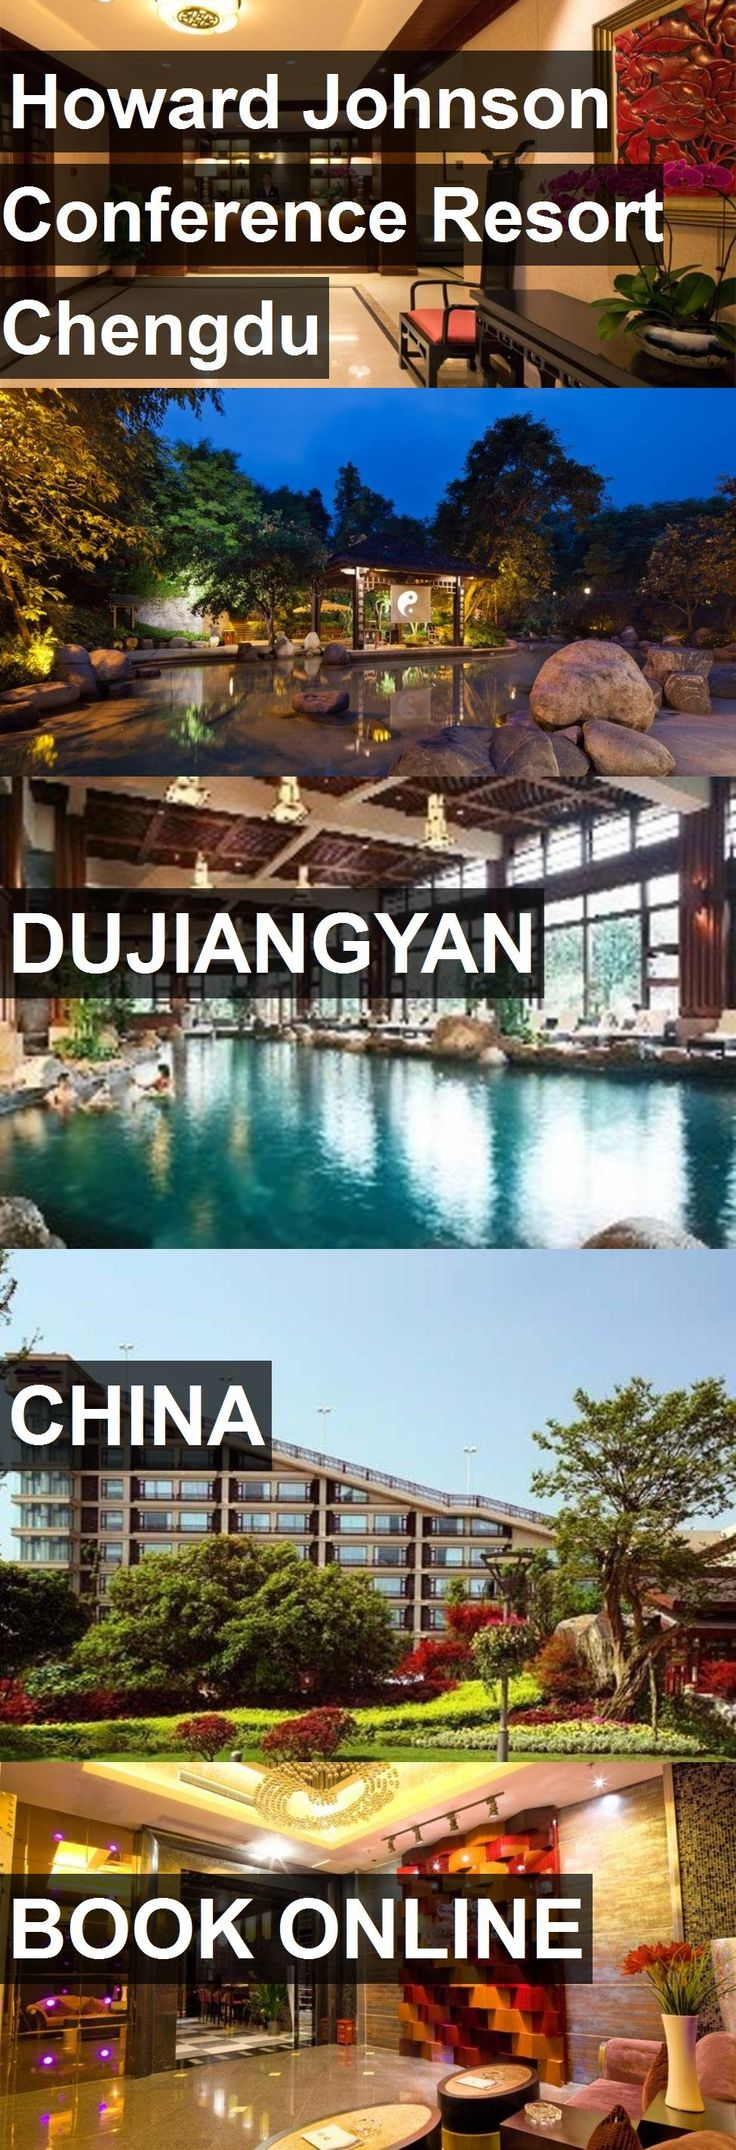 Hotel Howard Johnson Conference Resort Chengdu in Dujiangyan, China. For more information, photos, reviews and best prices please follow the link. #China #Dujiangyan #travel #vacation #hotel